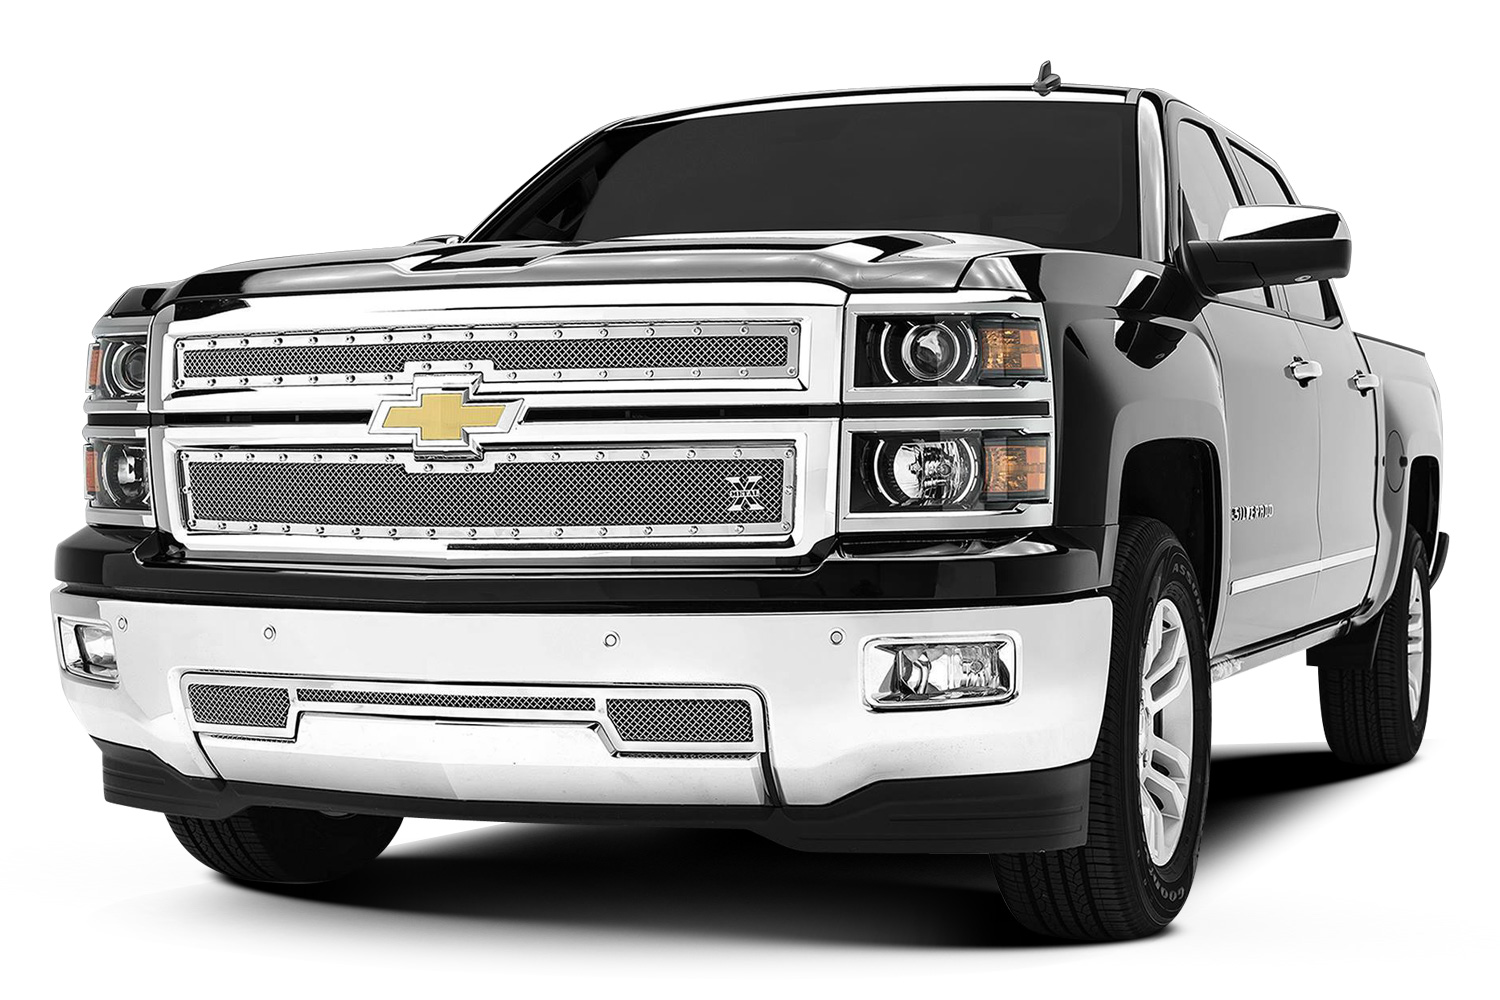 2014 Chevy Silverado 1500 with T-Rex grille